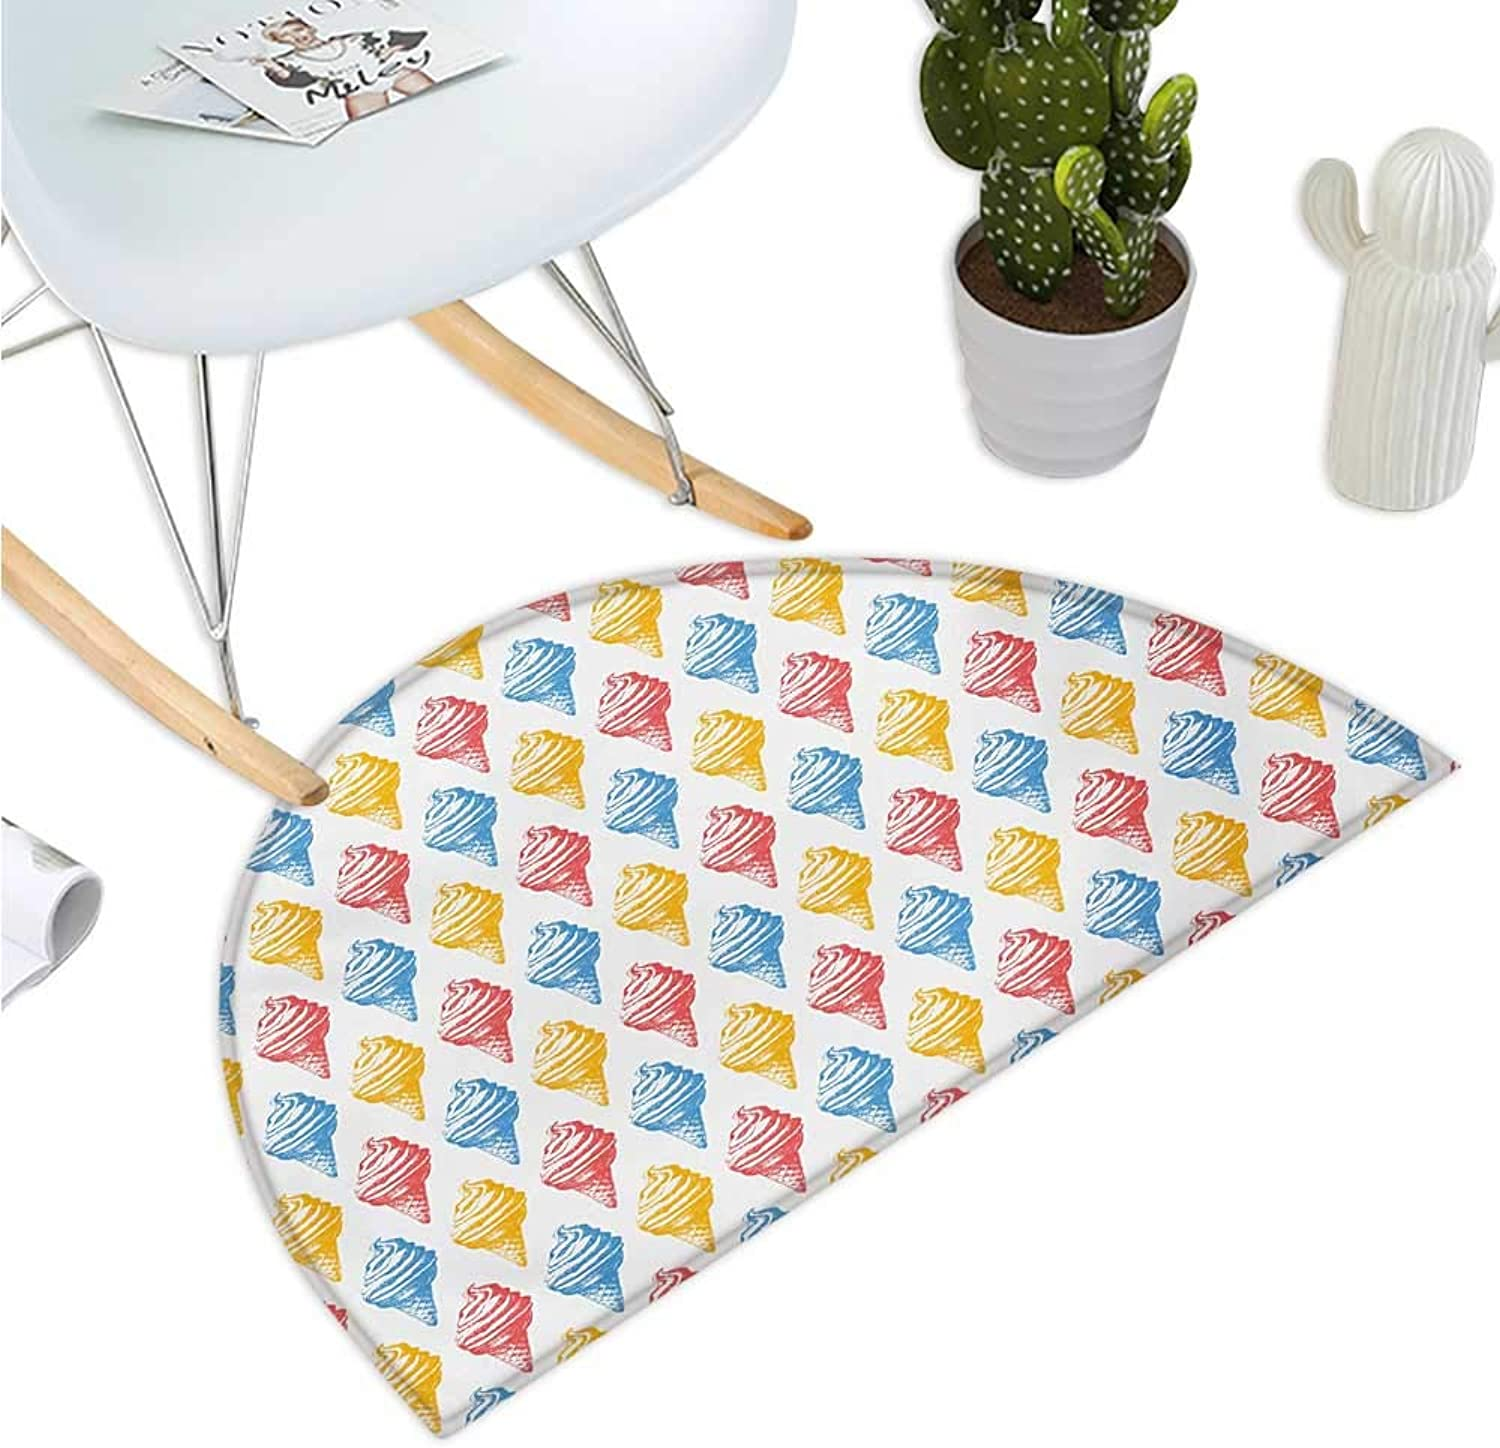 Food Half Round Door mats Ice Cream Cones Fifties Time colord Drawings with Abstract Retro Like Design Image Entry Door Mat H 47.2  xD 70.8  Multicolor